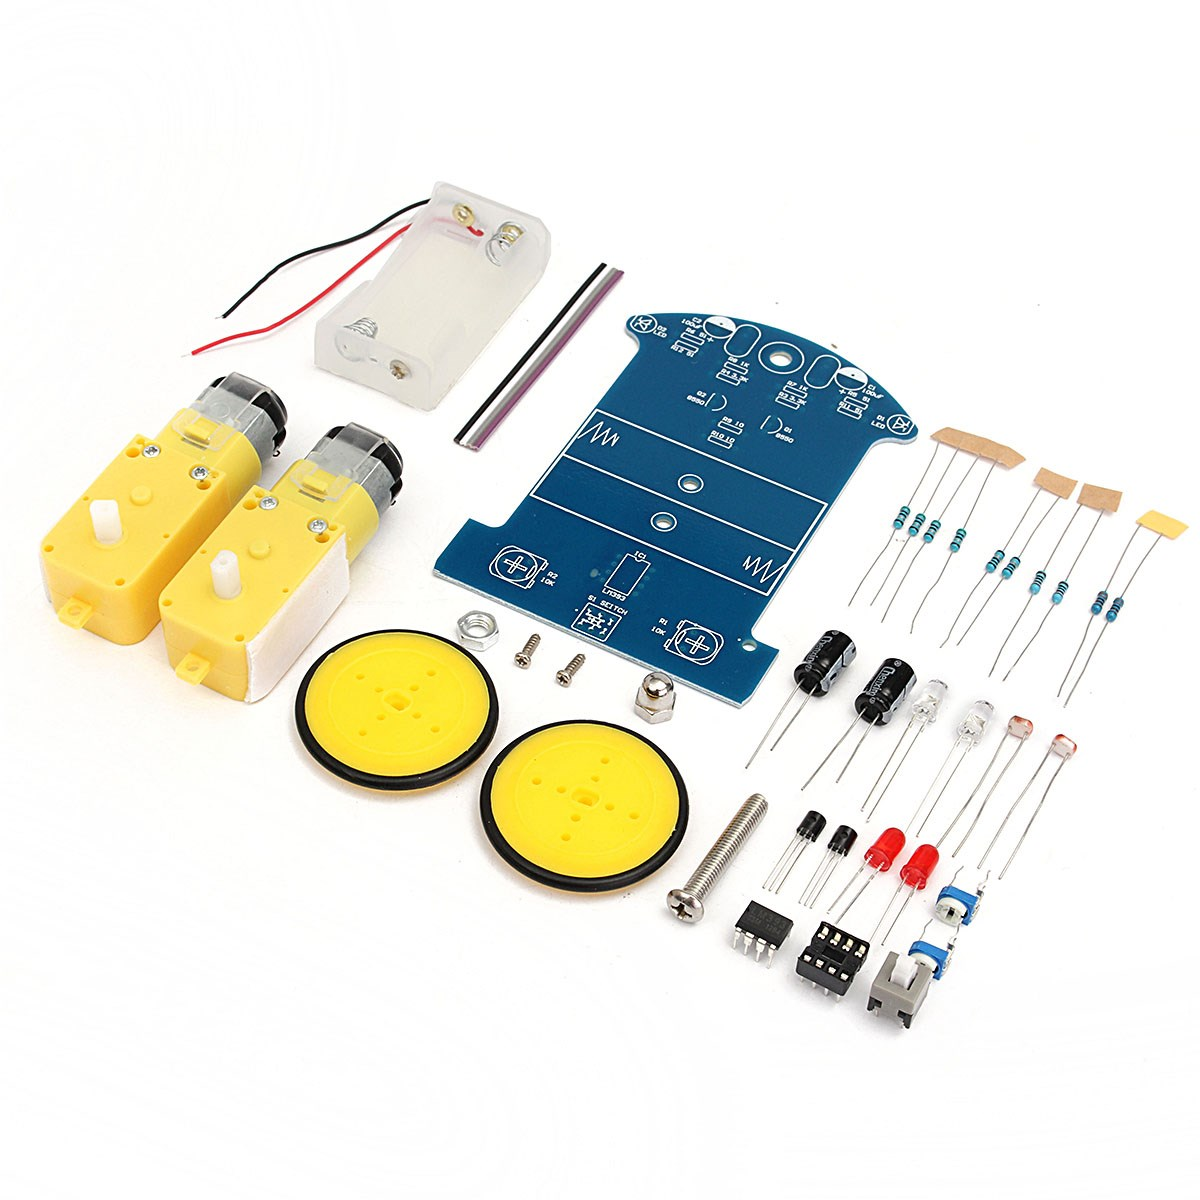 High Quality New DIY Smart Tracking Robot Car Electronic Kit With Reduction Motor SetHigh Quality New DIY Smart Tracking Robot Car Electronic Kit With Reduction Motor Set